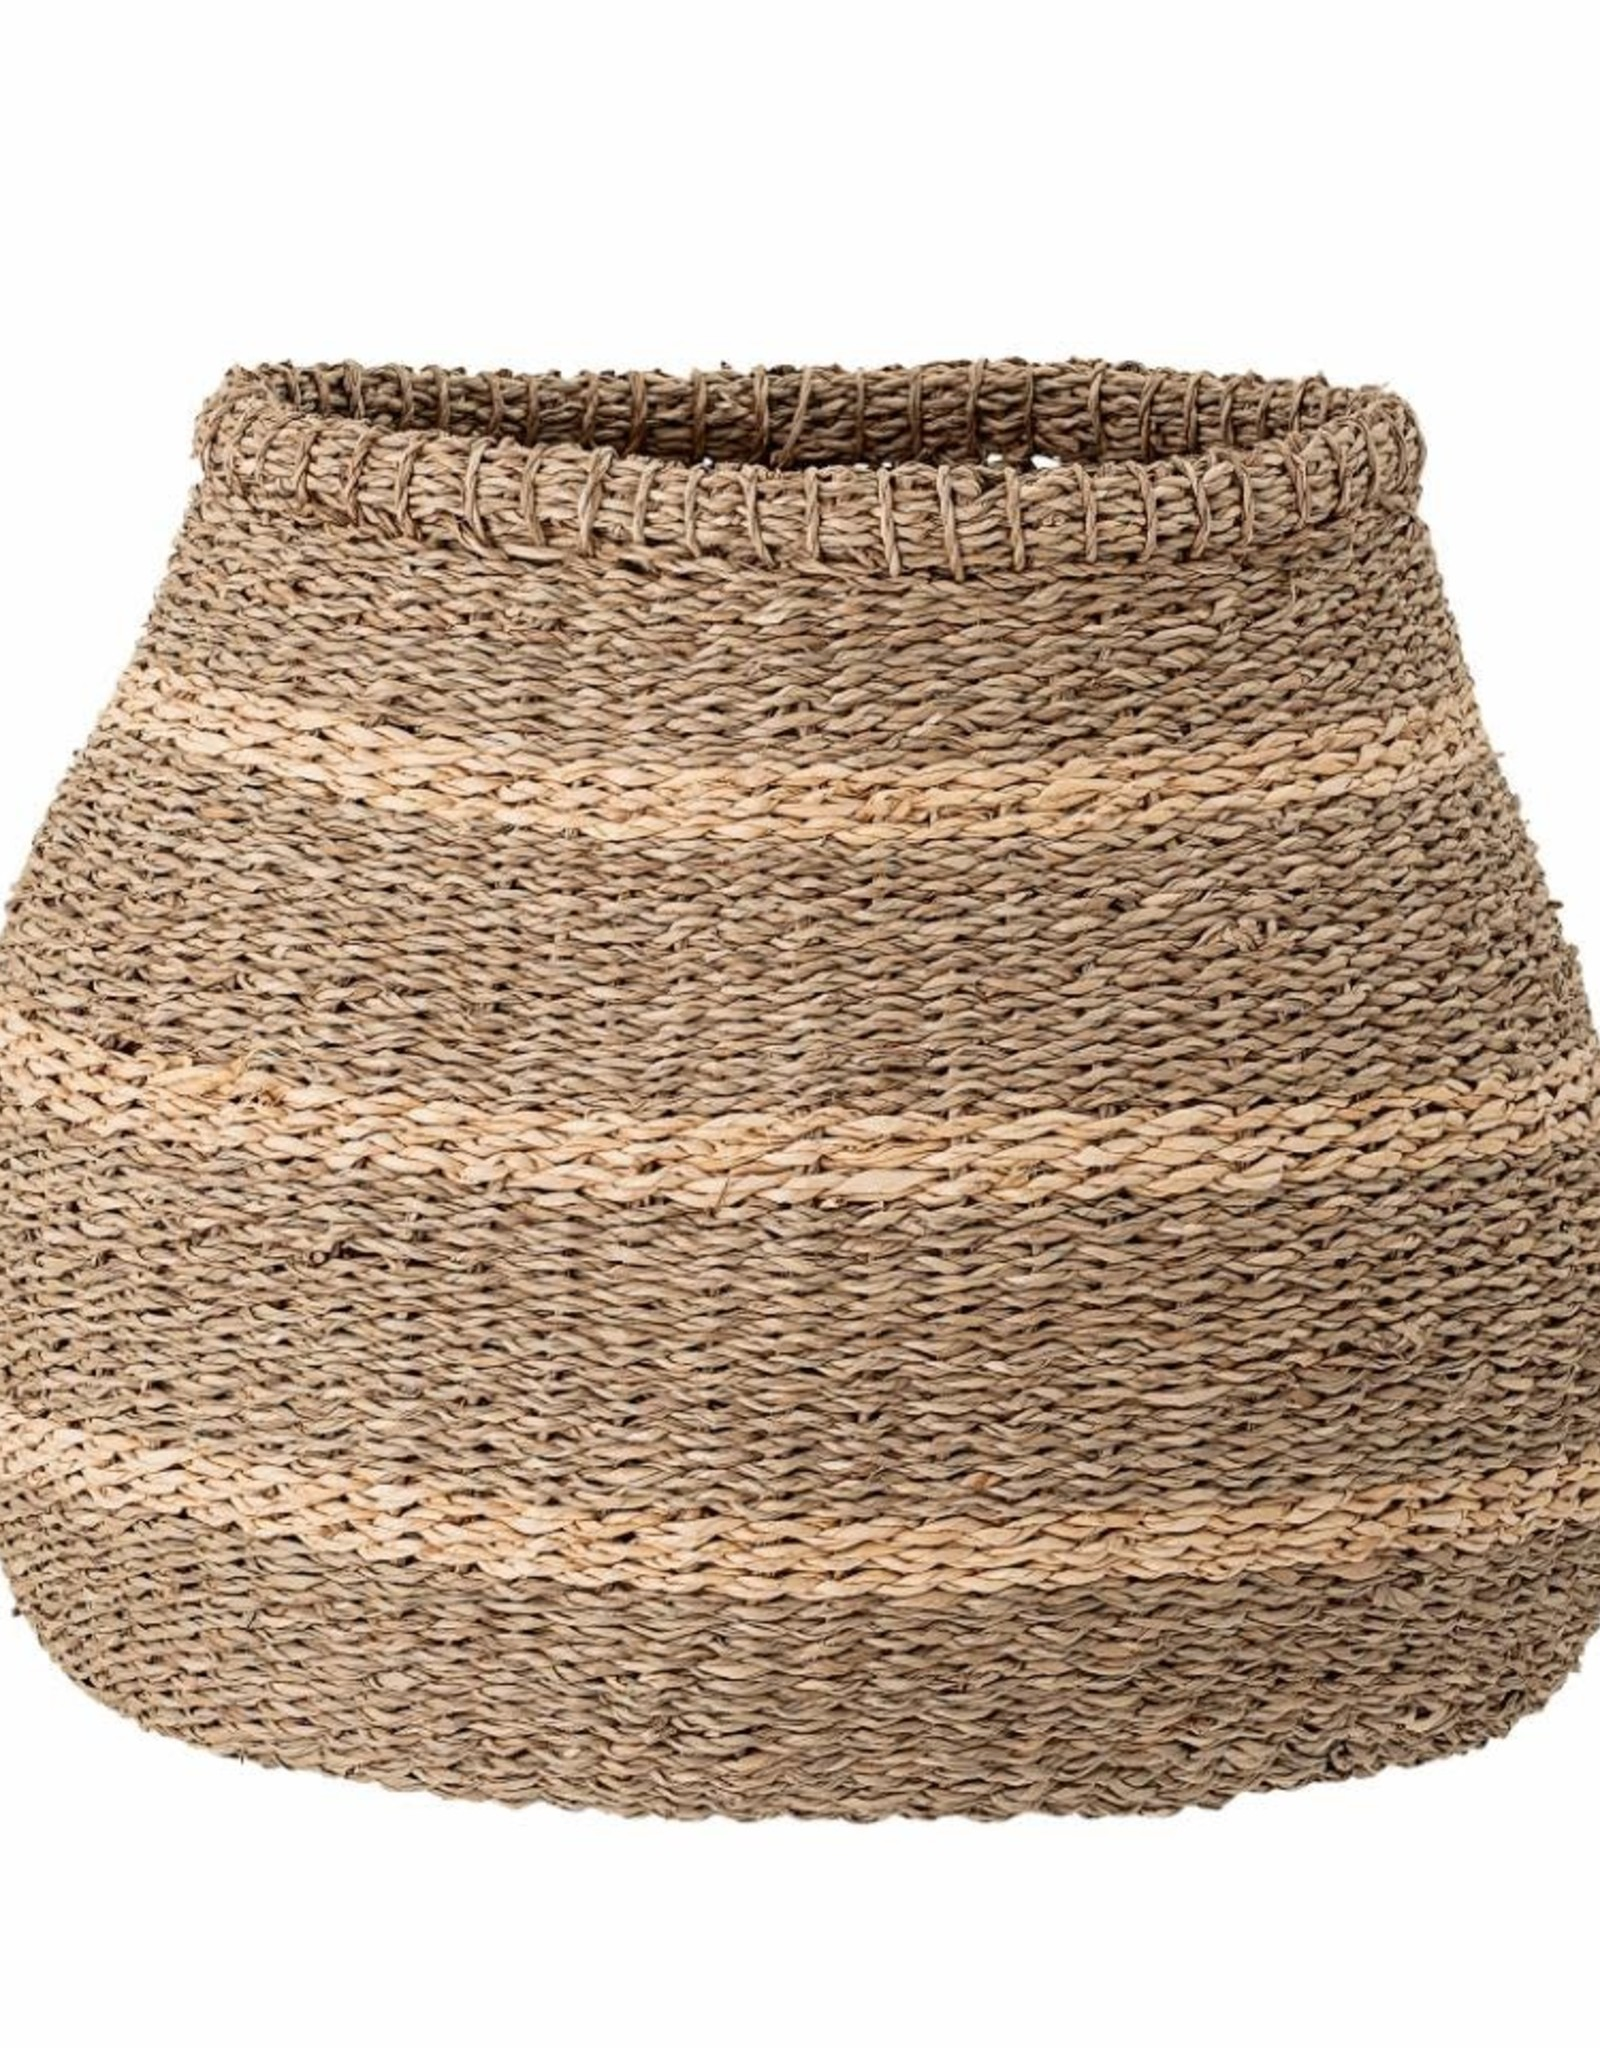 Bloomingville Bloomingville - Basket nature, stripes seagrass